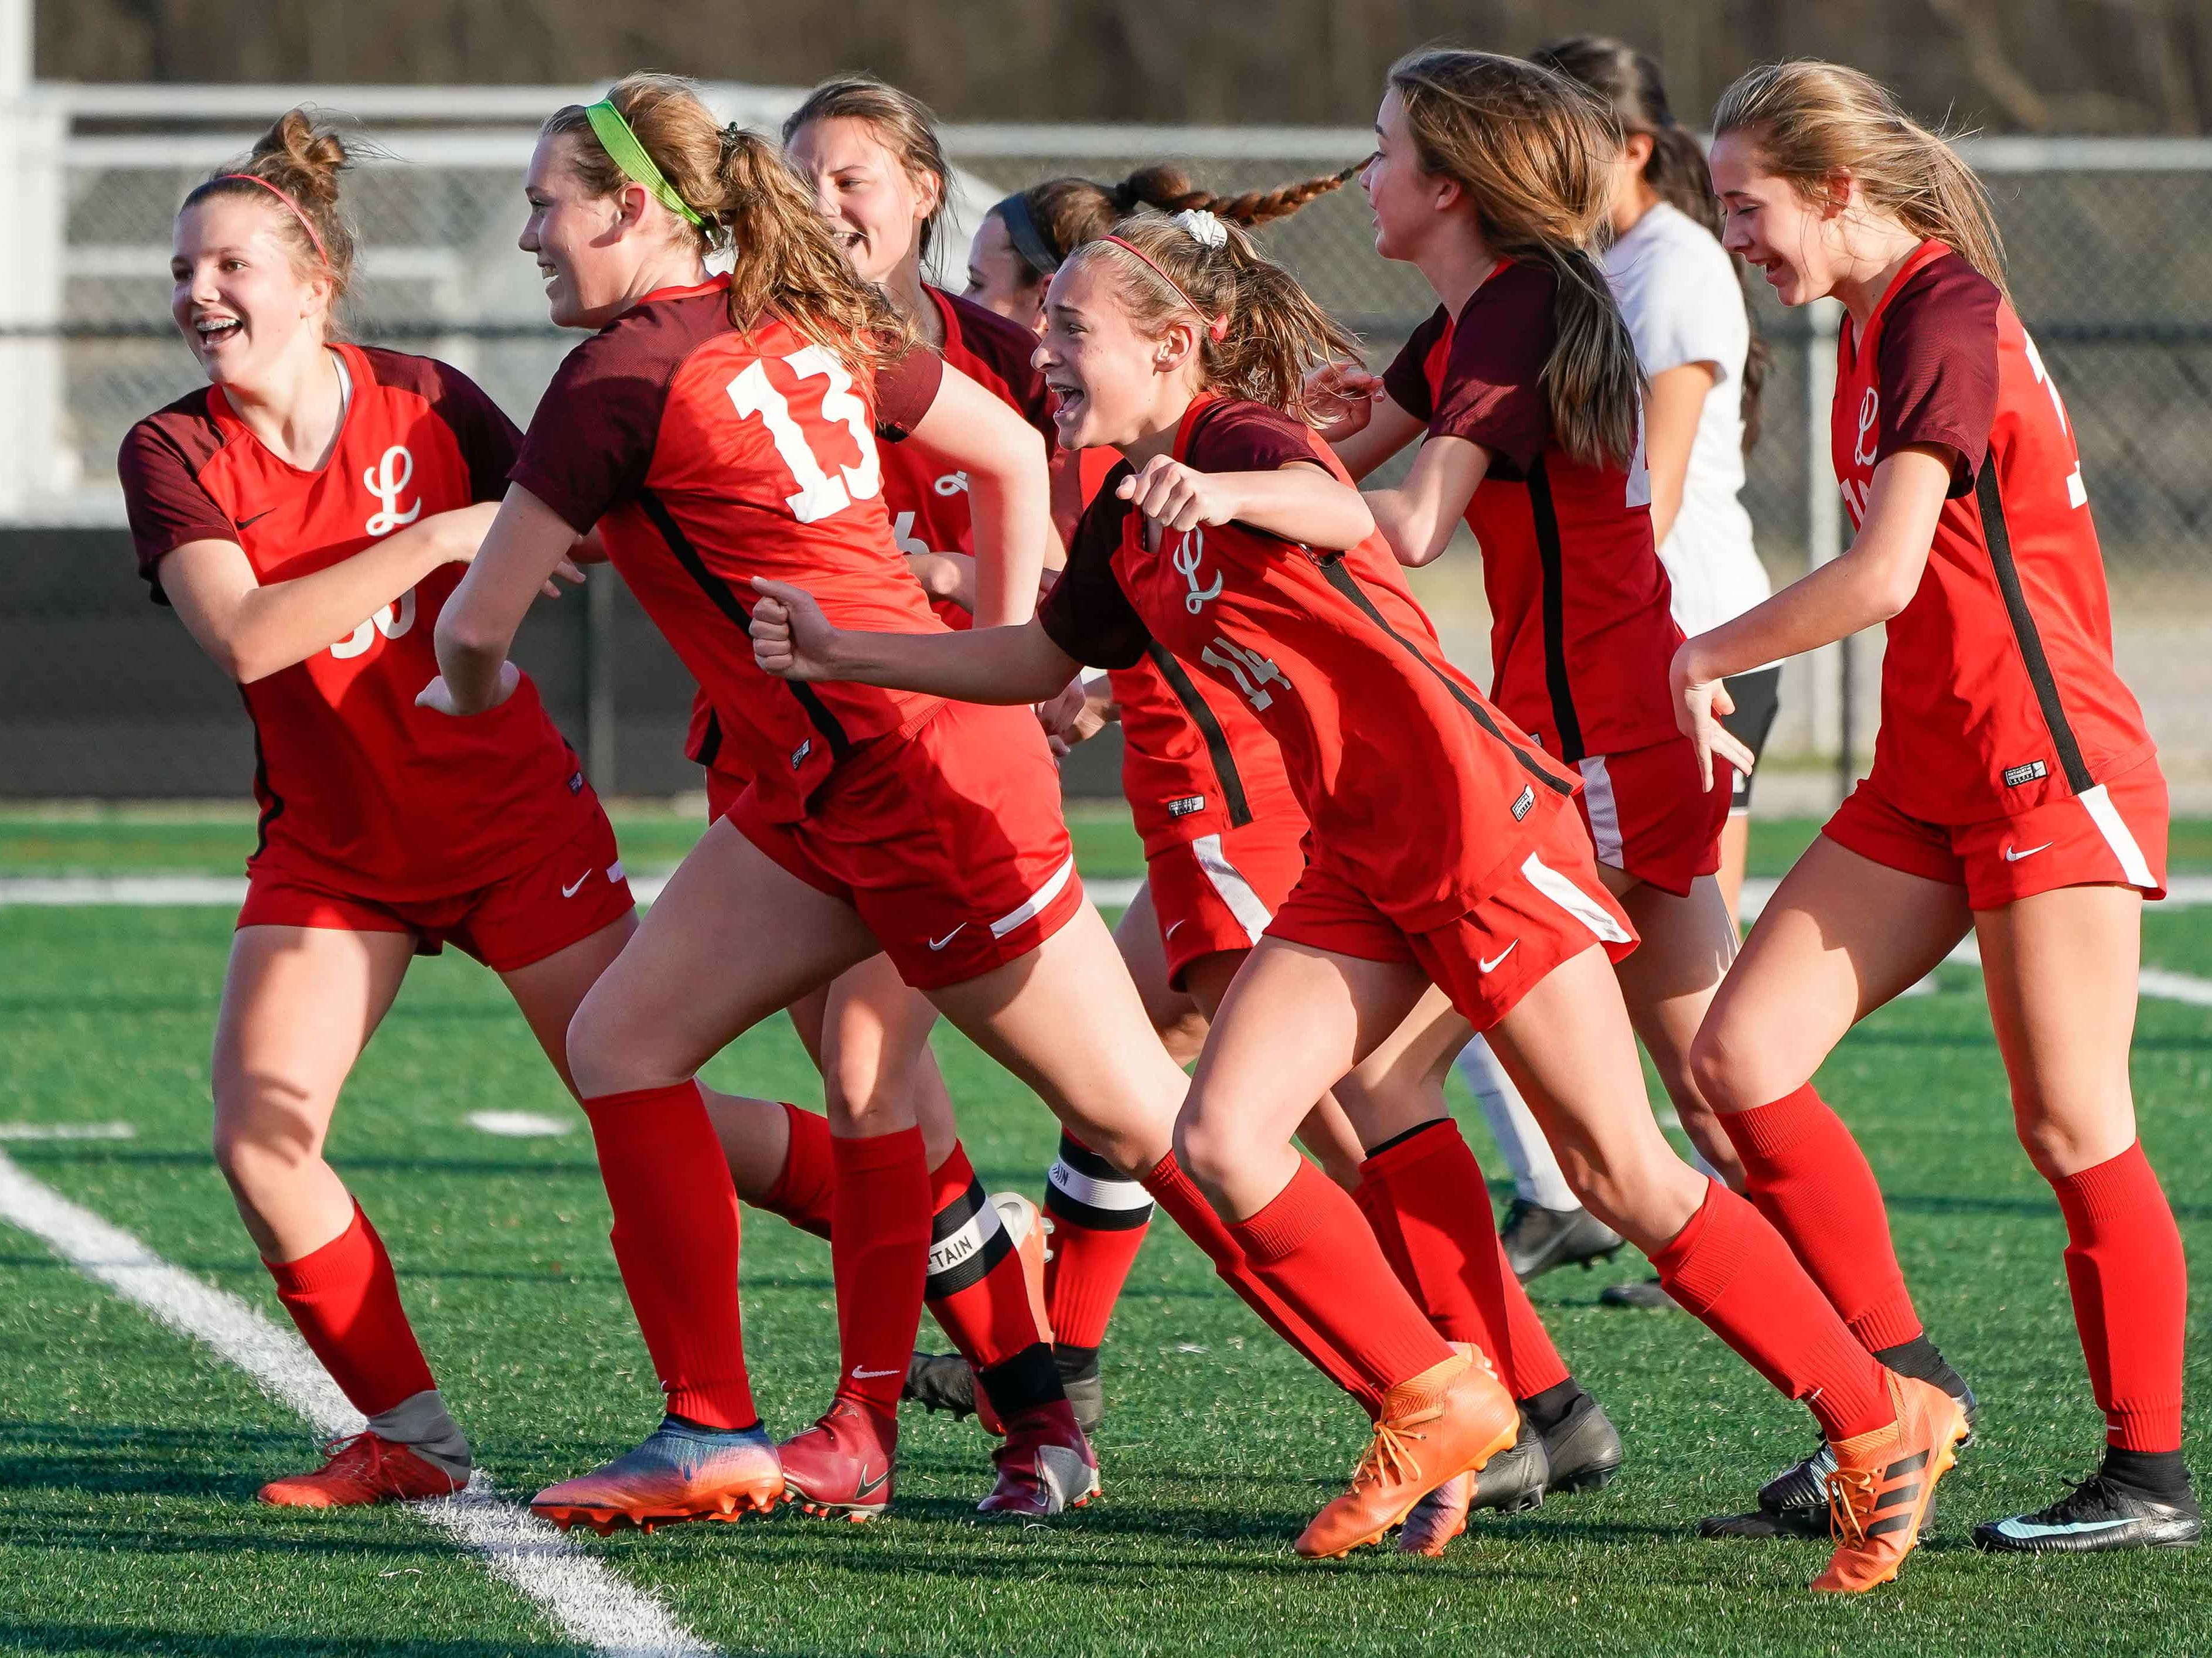 Lafayette girls celebrate a first period goal against Long Beach during the MHSAA 5A Girls Soccer Championships held at Brandon High School in Brandon, MS, Saturday February 9, 2019.(Bob Smith-For The Clarion Ledger)